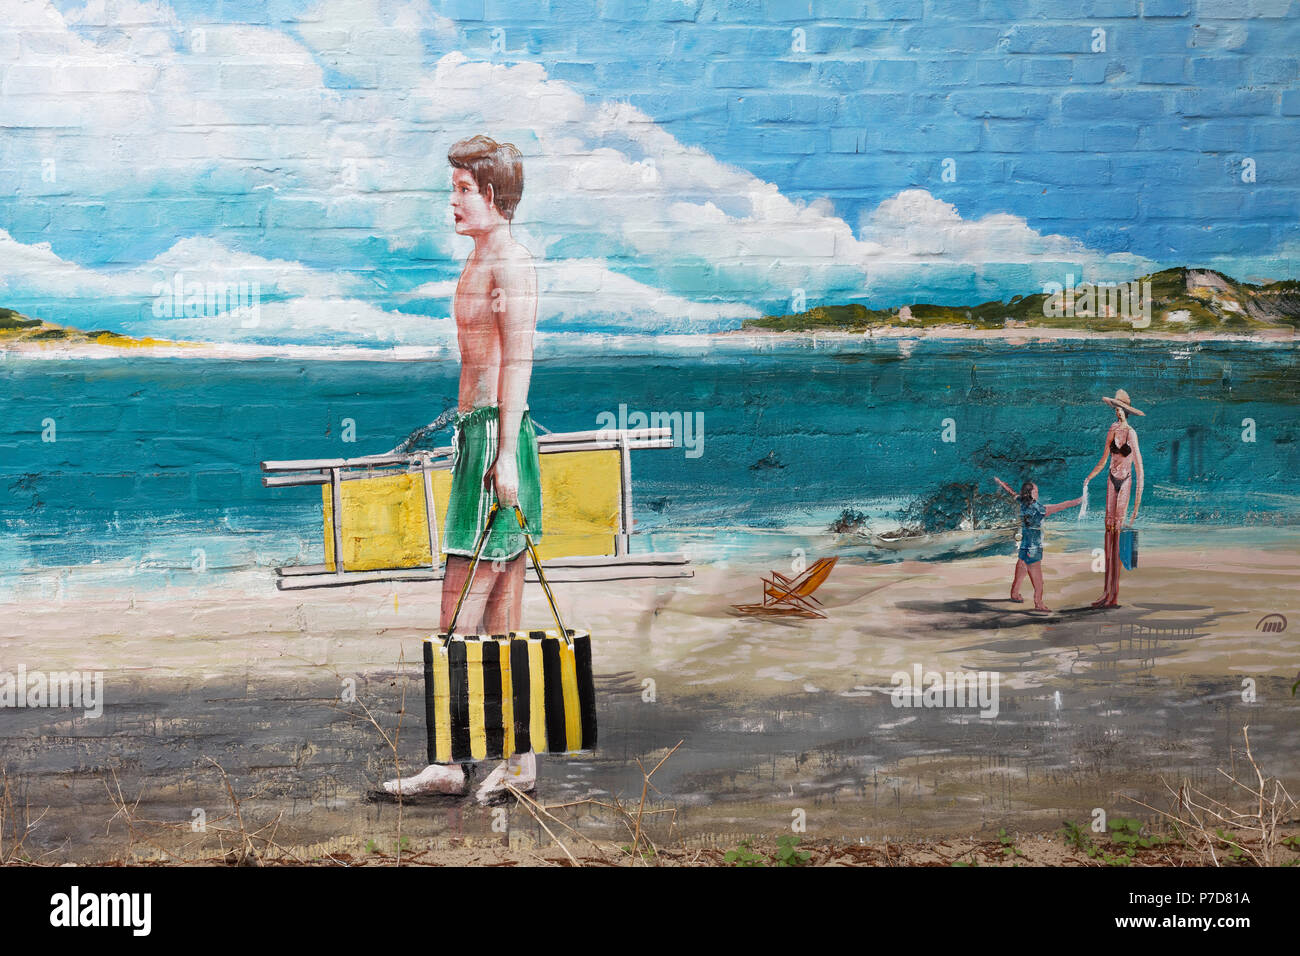 Man in swimming trunks going to the beach, Trompe L'oeil wall painting by Gregor Wosik and Danila Shumelev, Streetart - Stock Image